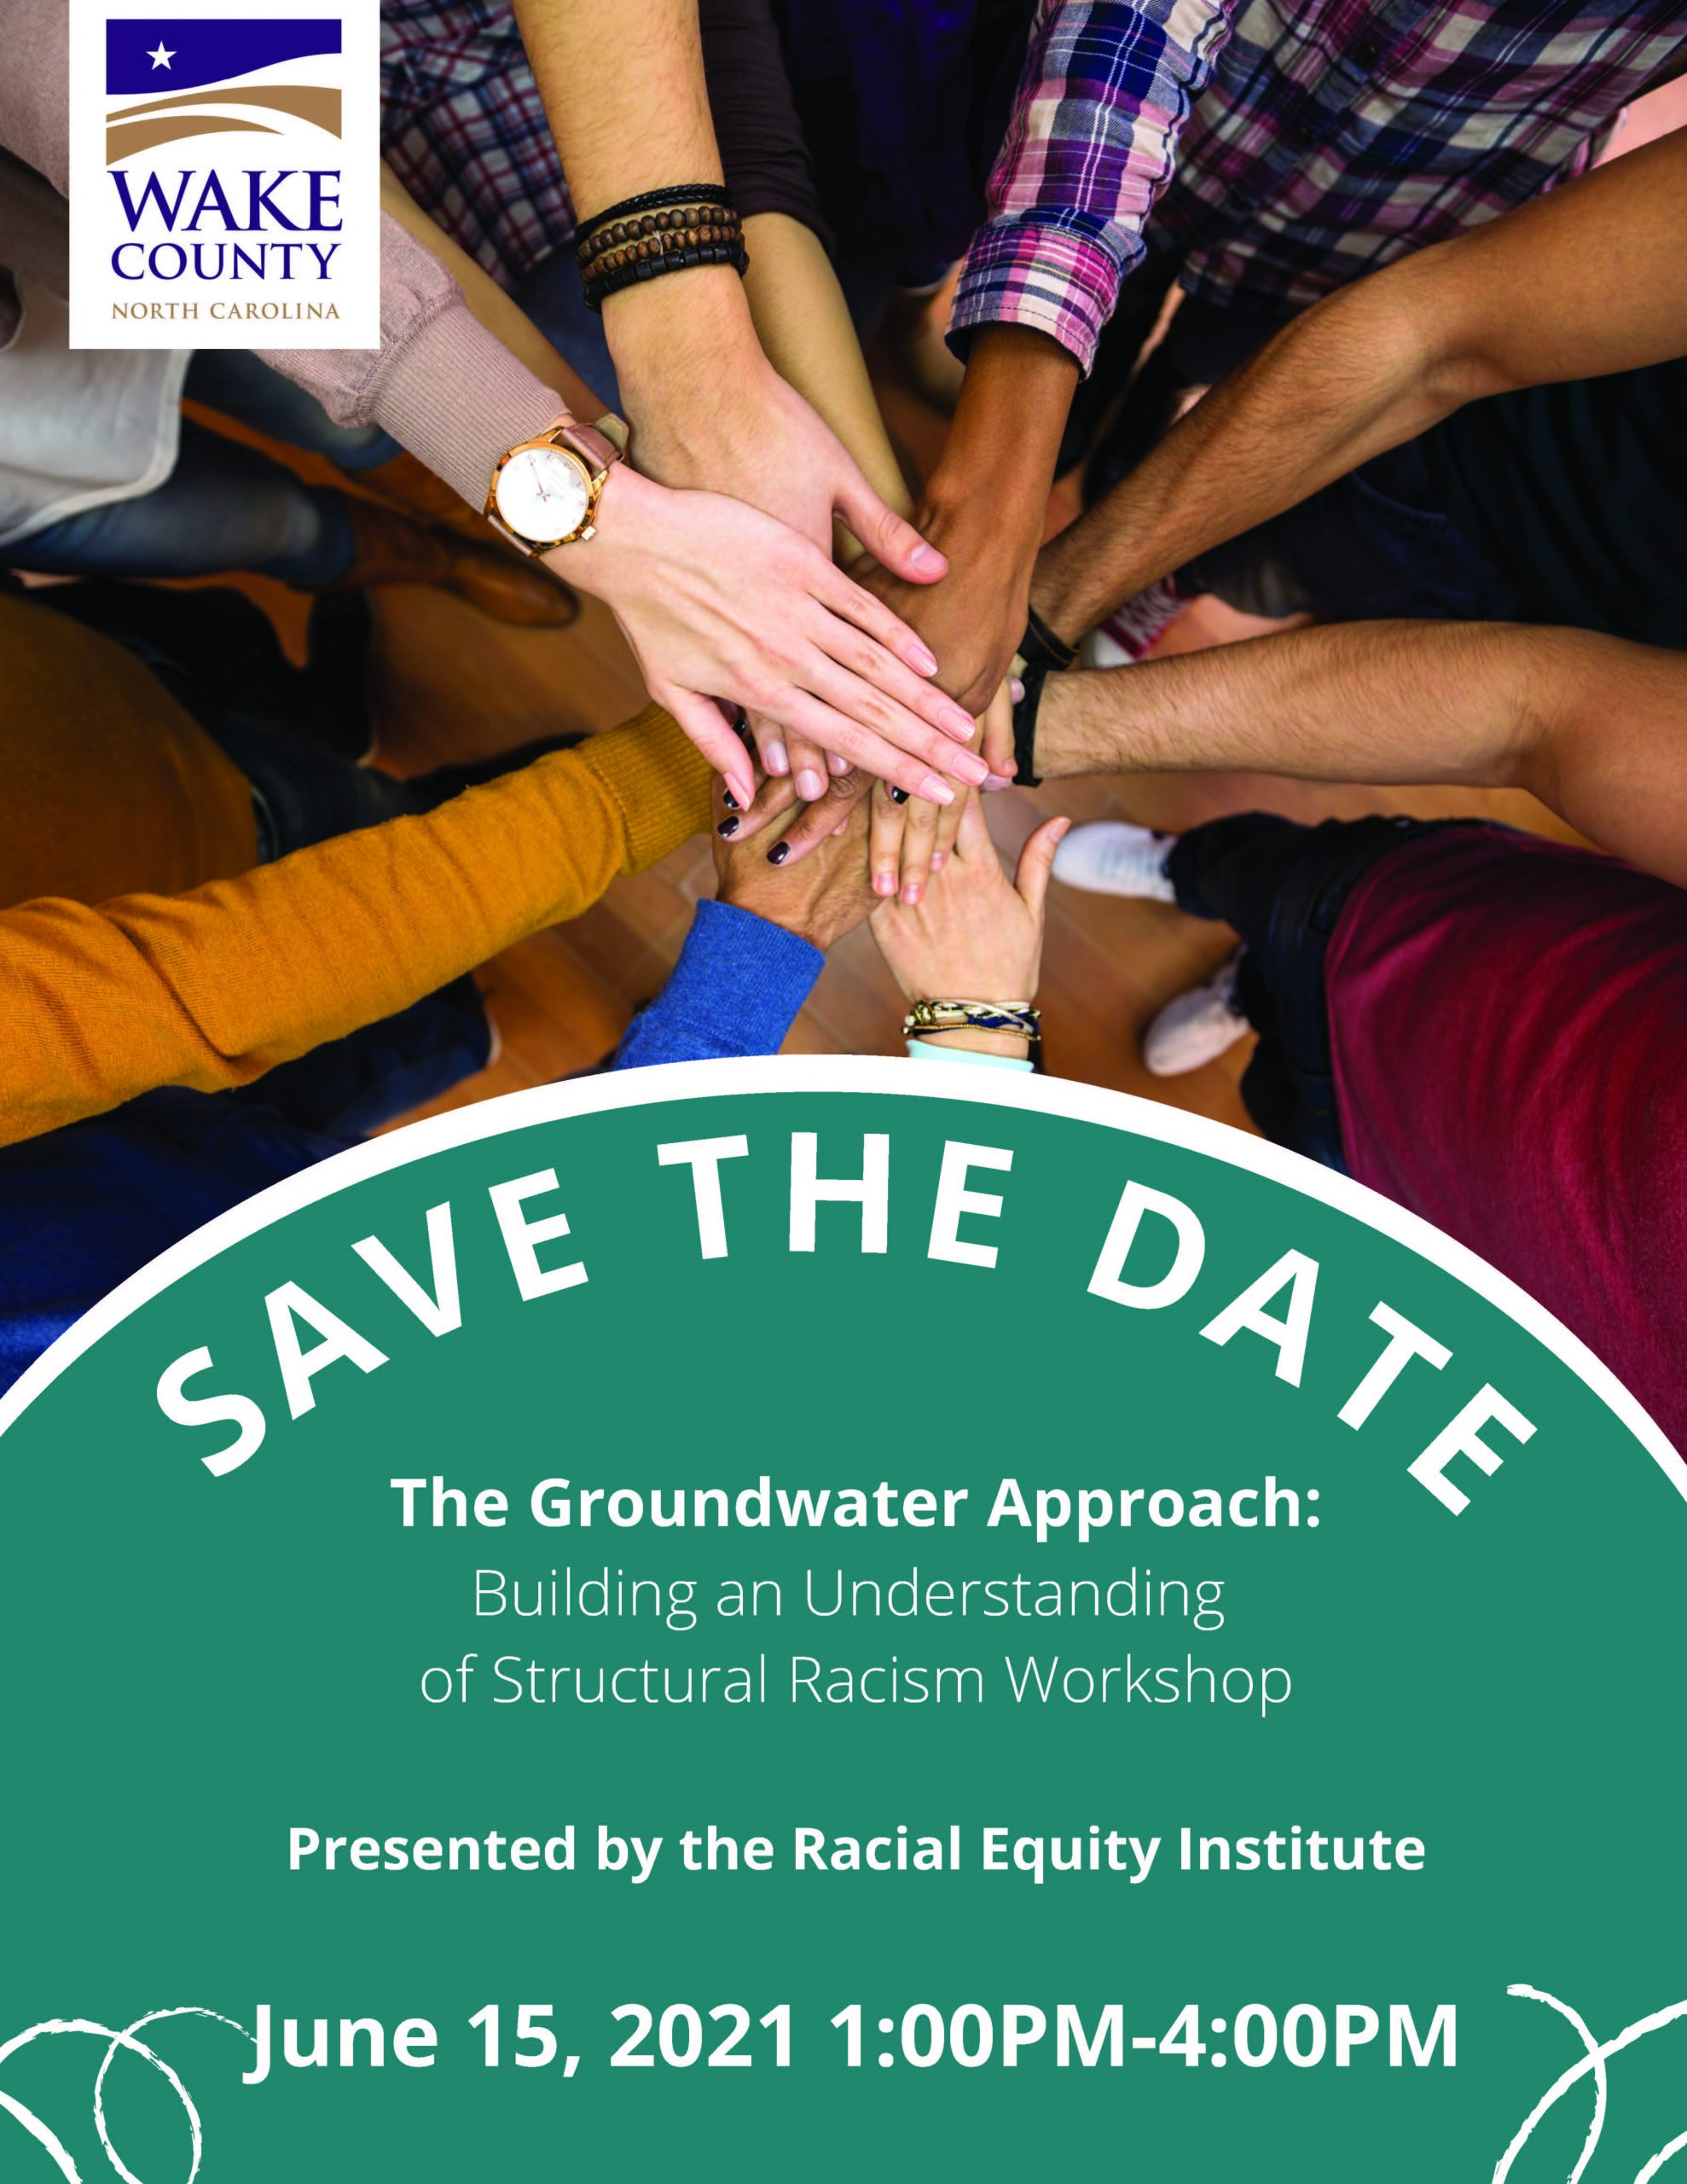 The Groundwater Approach: Building an Understanding of Structural Racism Workshop